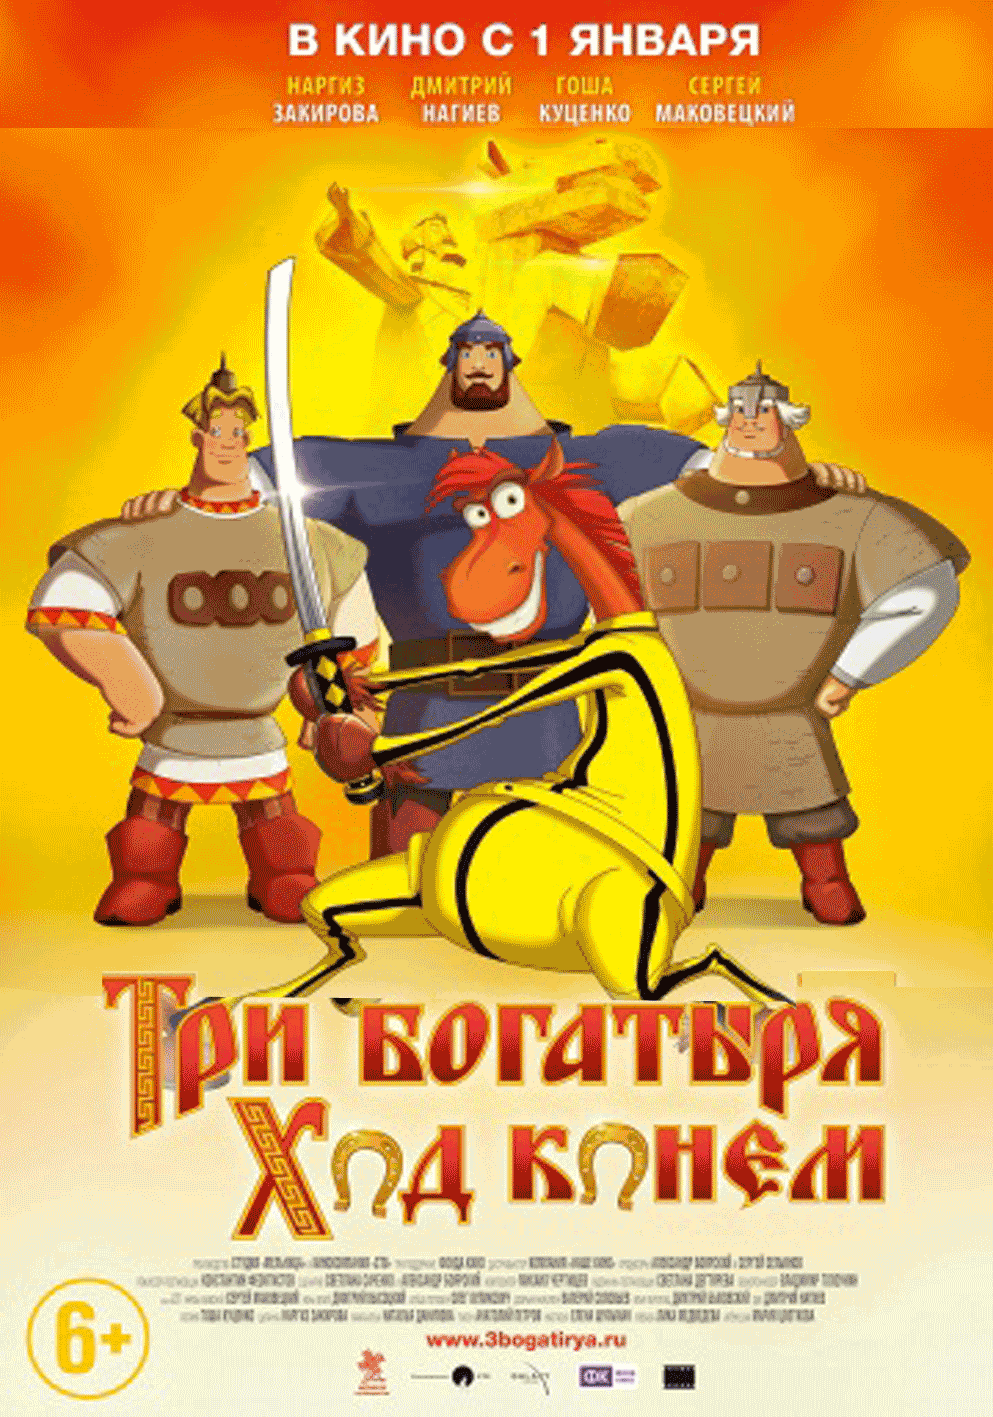 The Three Bogatyrs: The Horse's Course